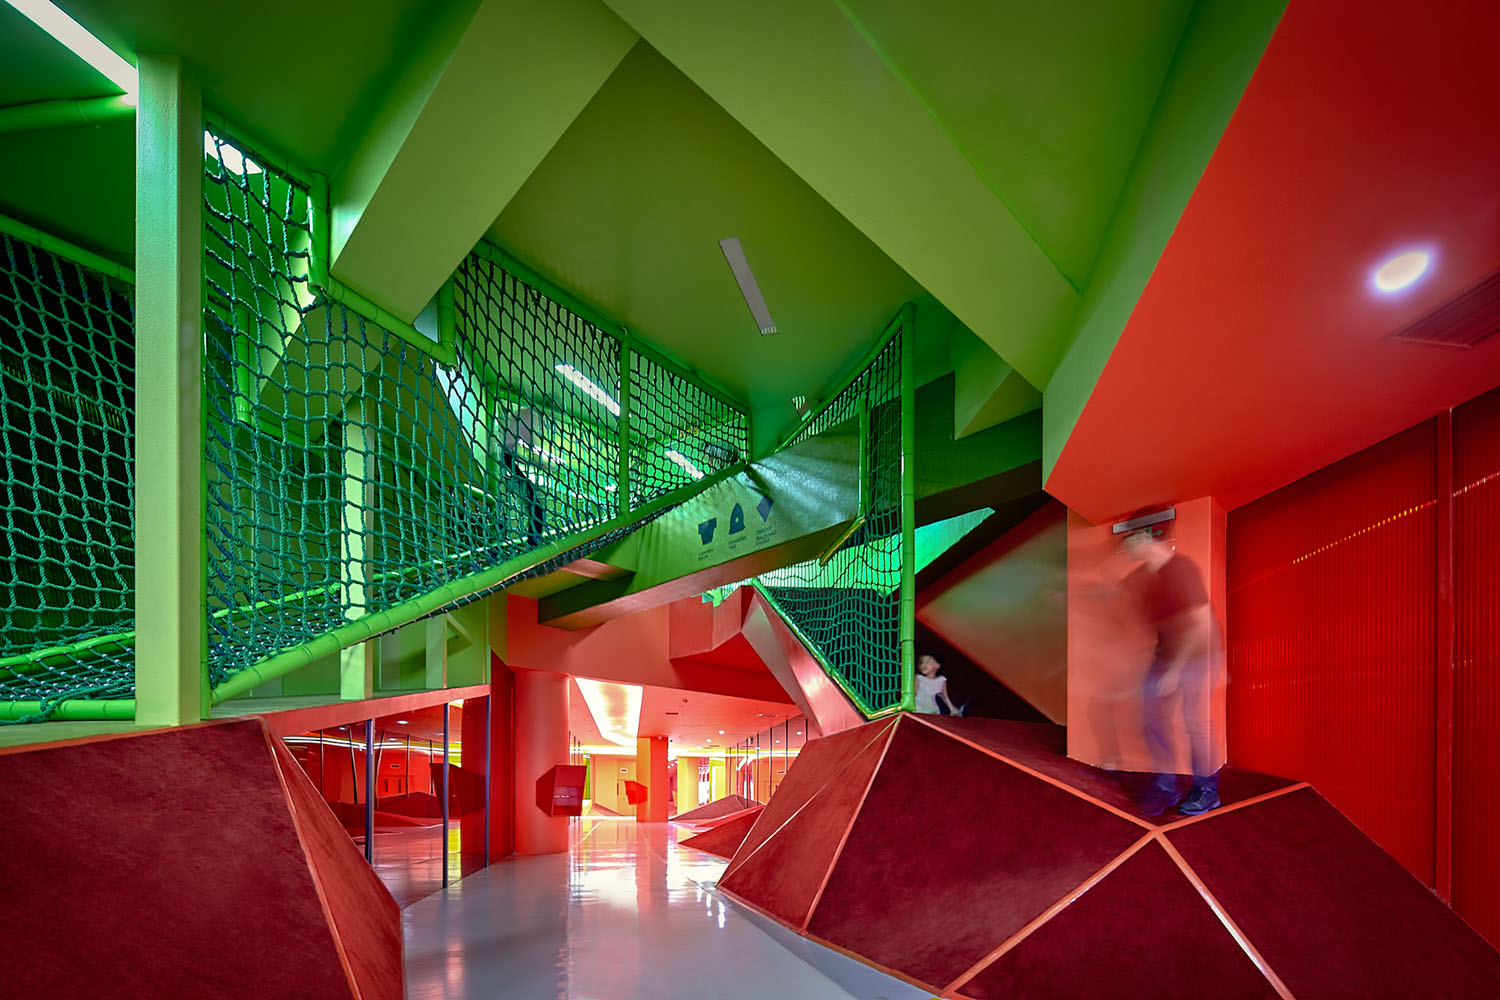 crossing of green and red tube YANG Chaoying